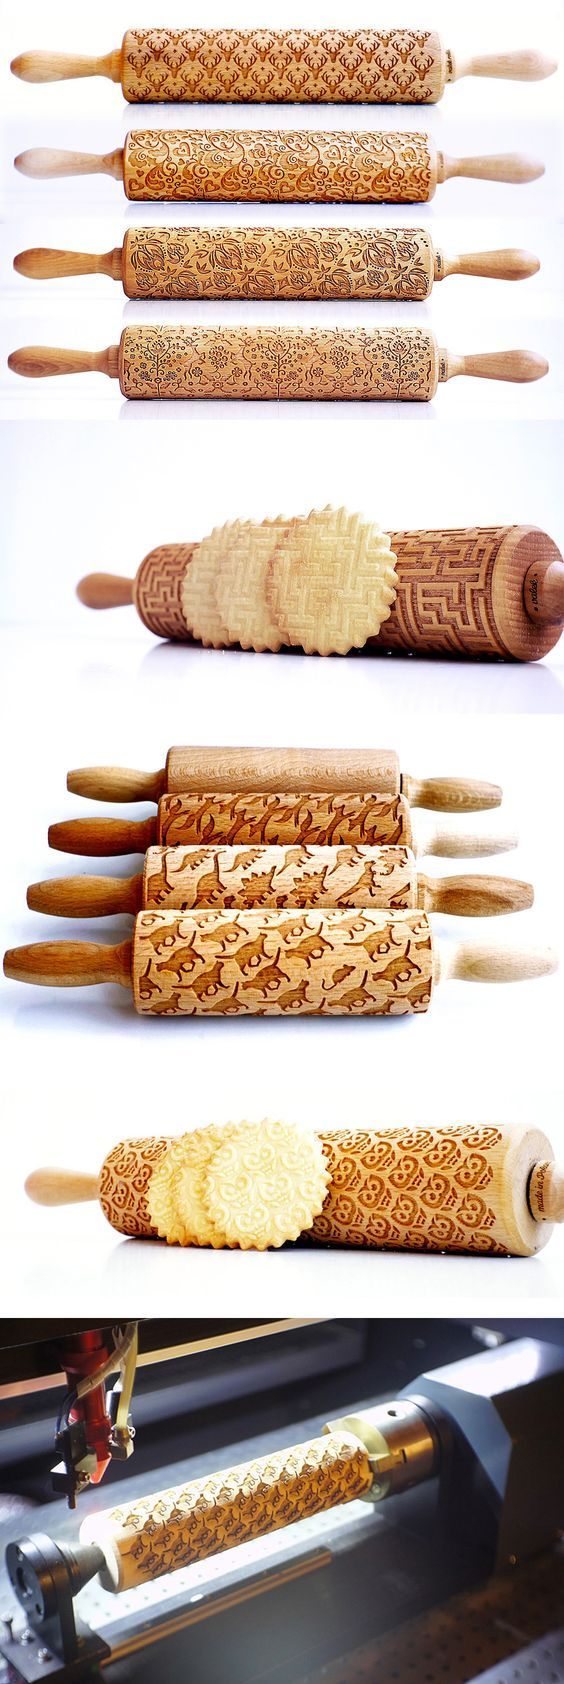 New Laser Engraved Rolling Pins by Valek Imprint Elaborate Designs on Baked Goods  http://www.thisiscolossal.com/2015/06/new-laser-engraved-rolling-pins-by-valek-imprint-elaborate-designs-on-baked-goods/: